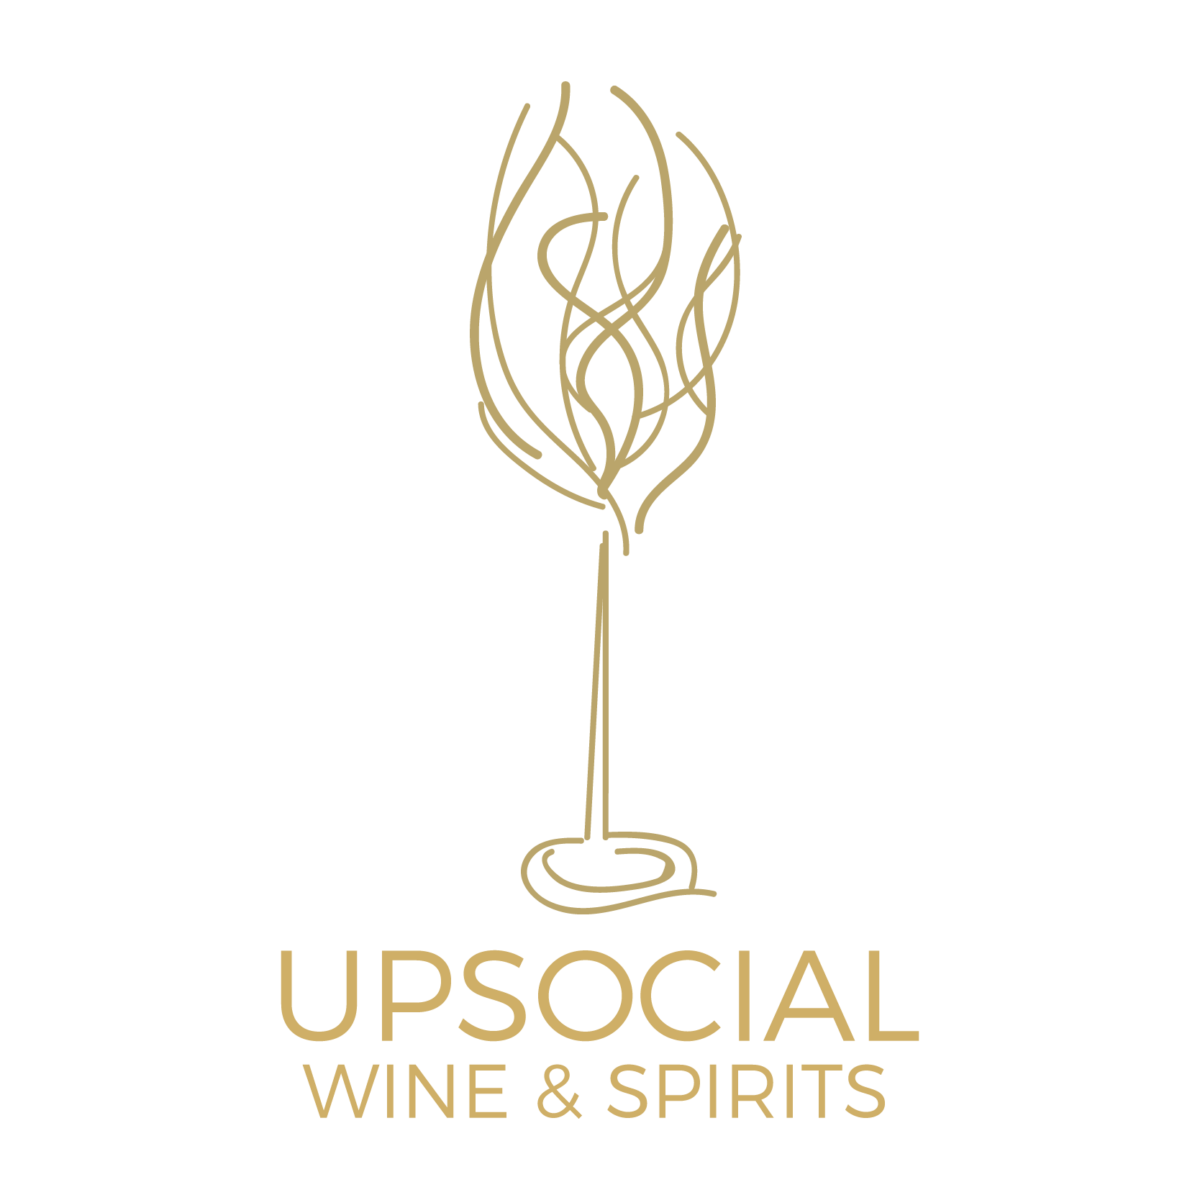 Press Release:  Liz Palmer announces new website launch incorporating UPSocial Wine & Spirits Agency – a new global digital agency, based in Toronto, Canada